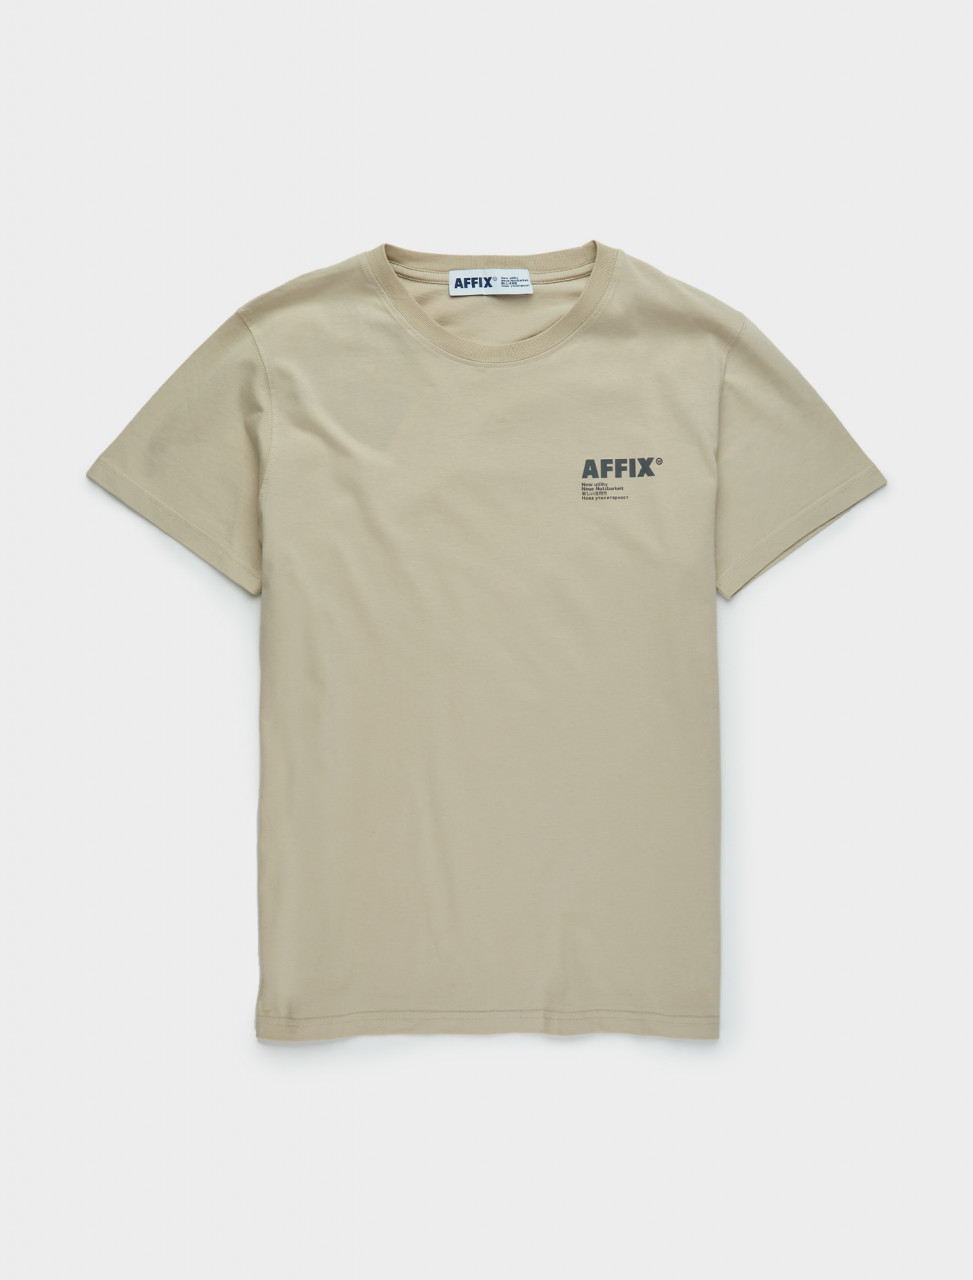 347-AW20TS08-T AFFIX Standardised Logo T-Shirt in Taupe